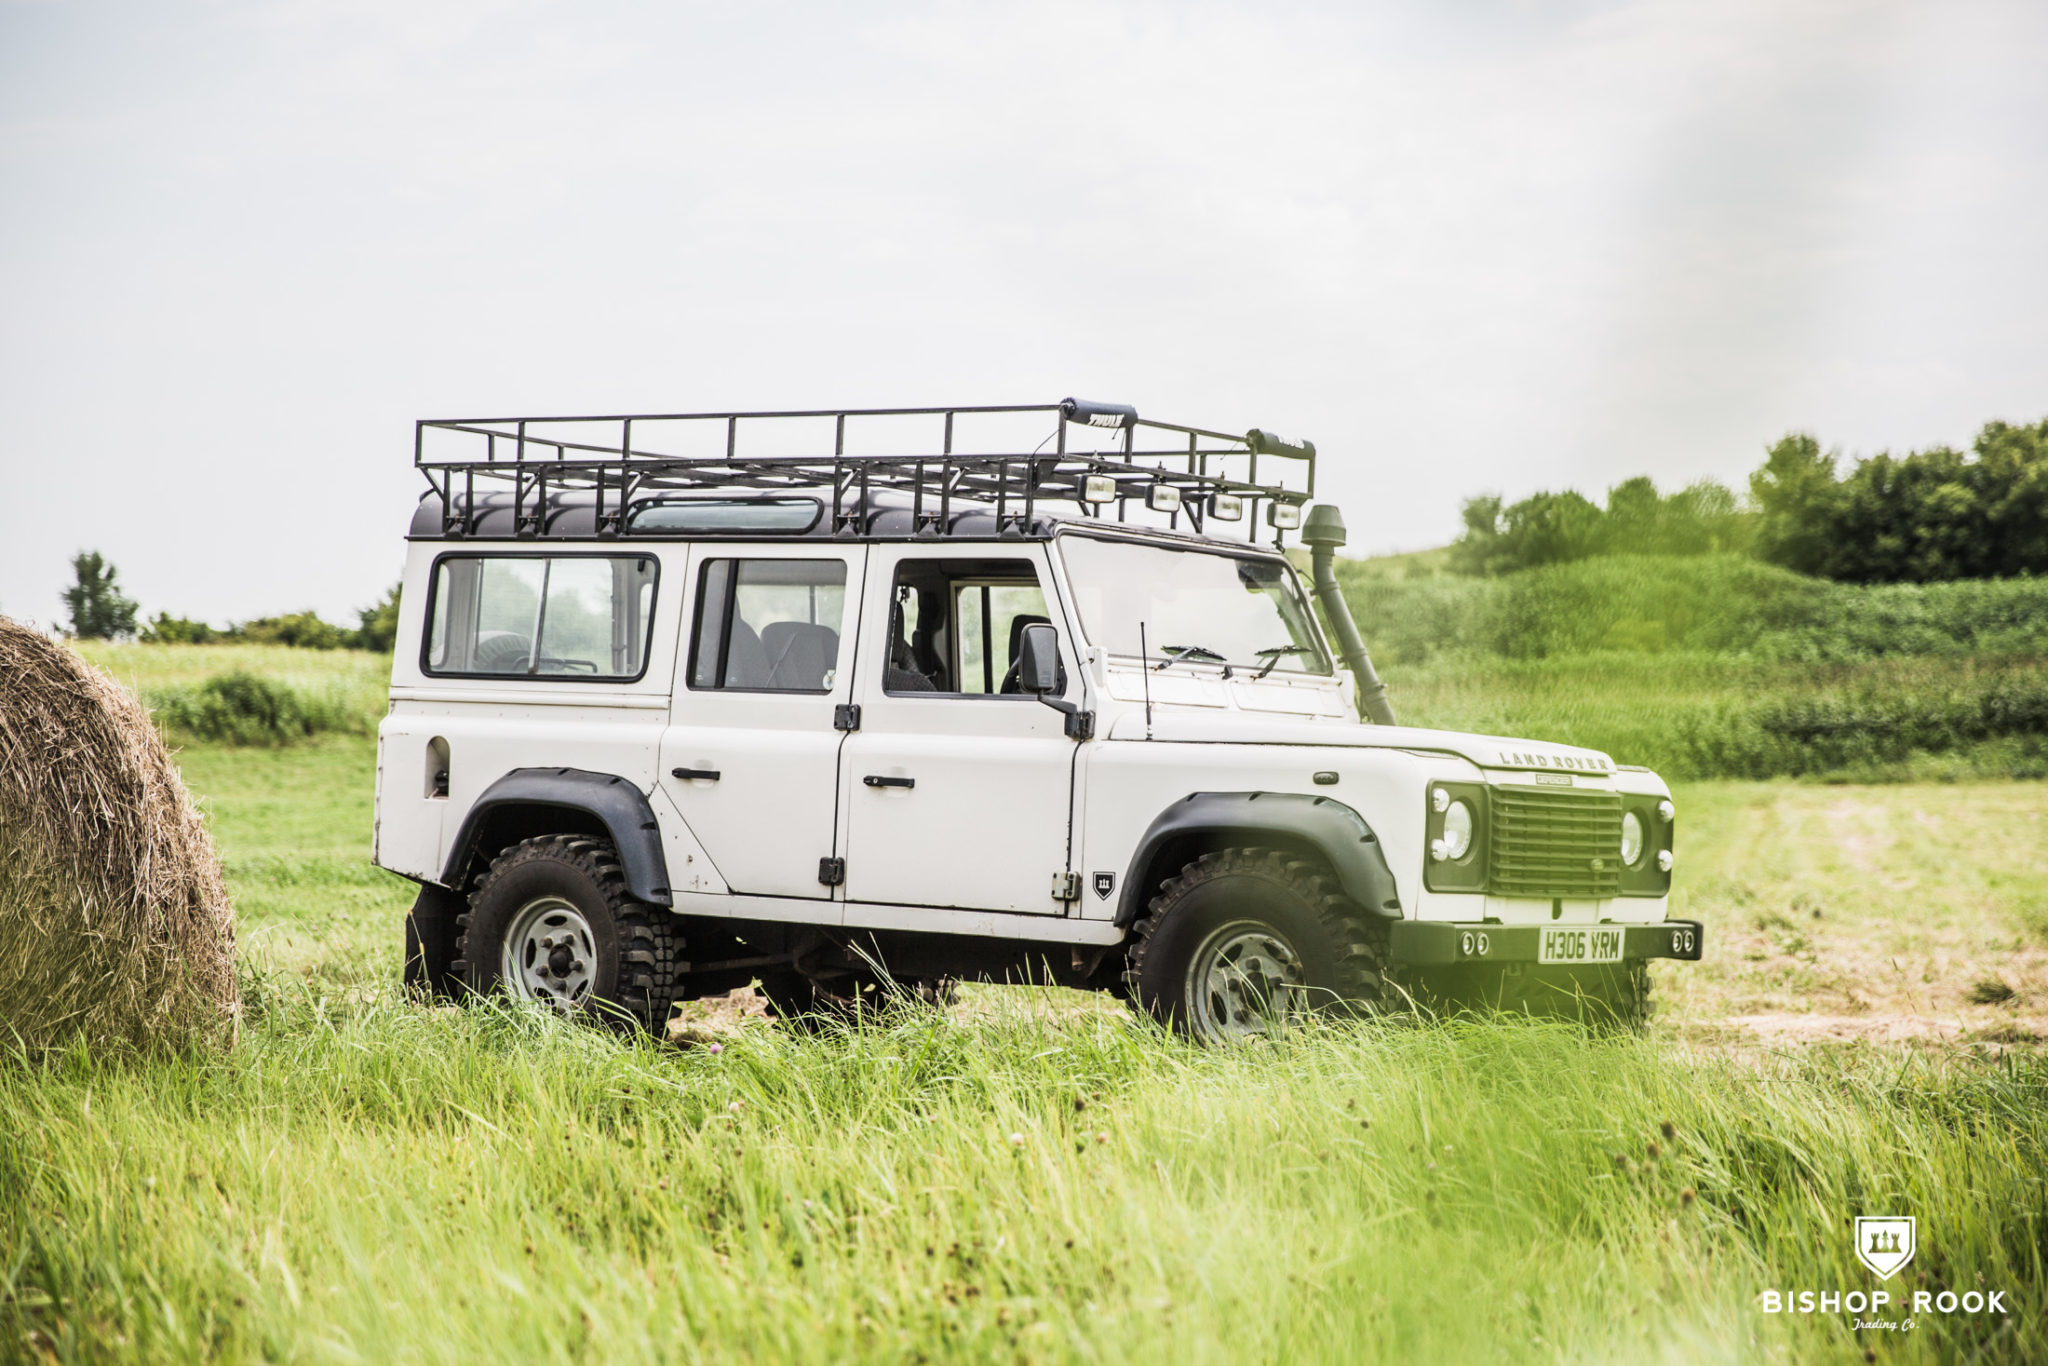 Land Rover Defender – Speciality Tool No. LR0001 – T-Shirt – Bishop+Rook